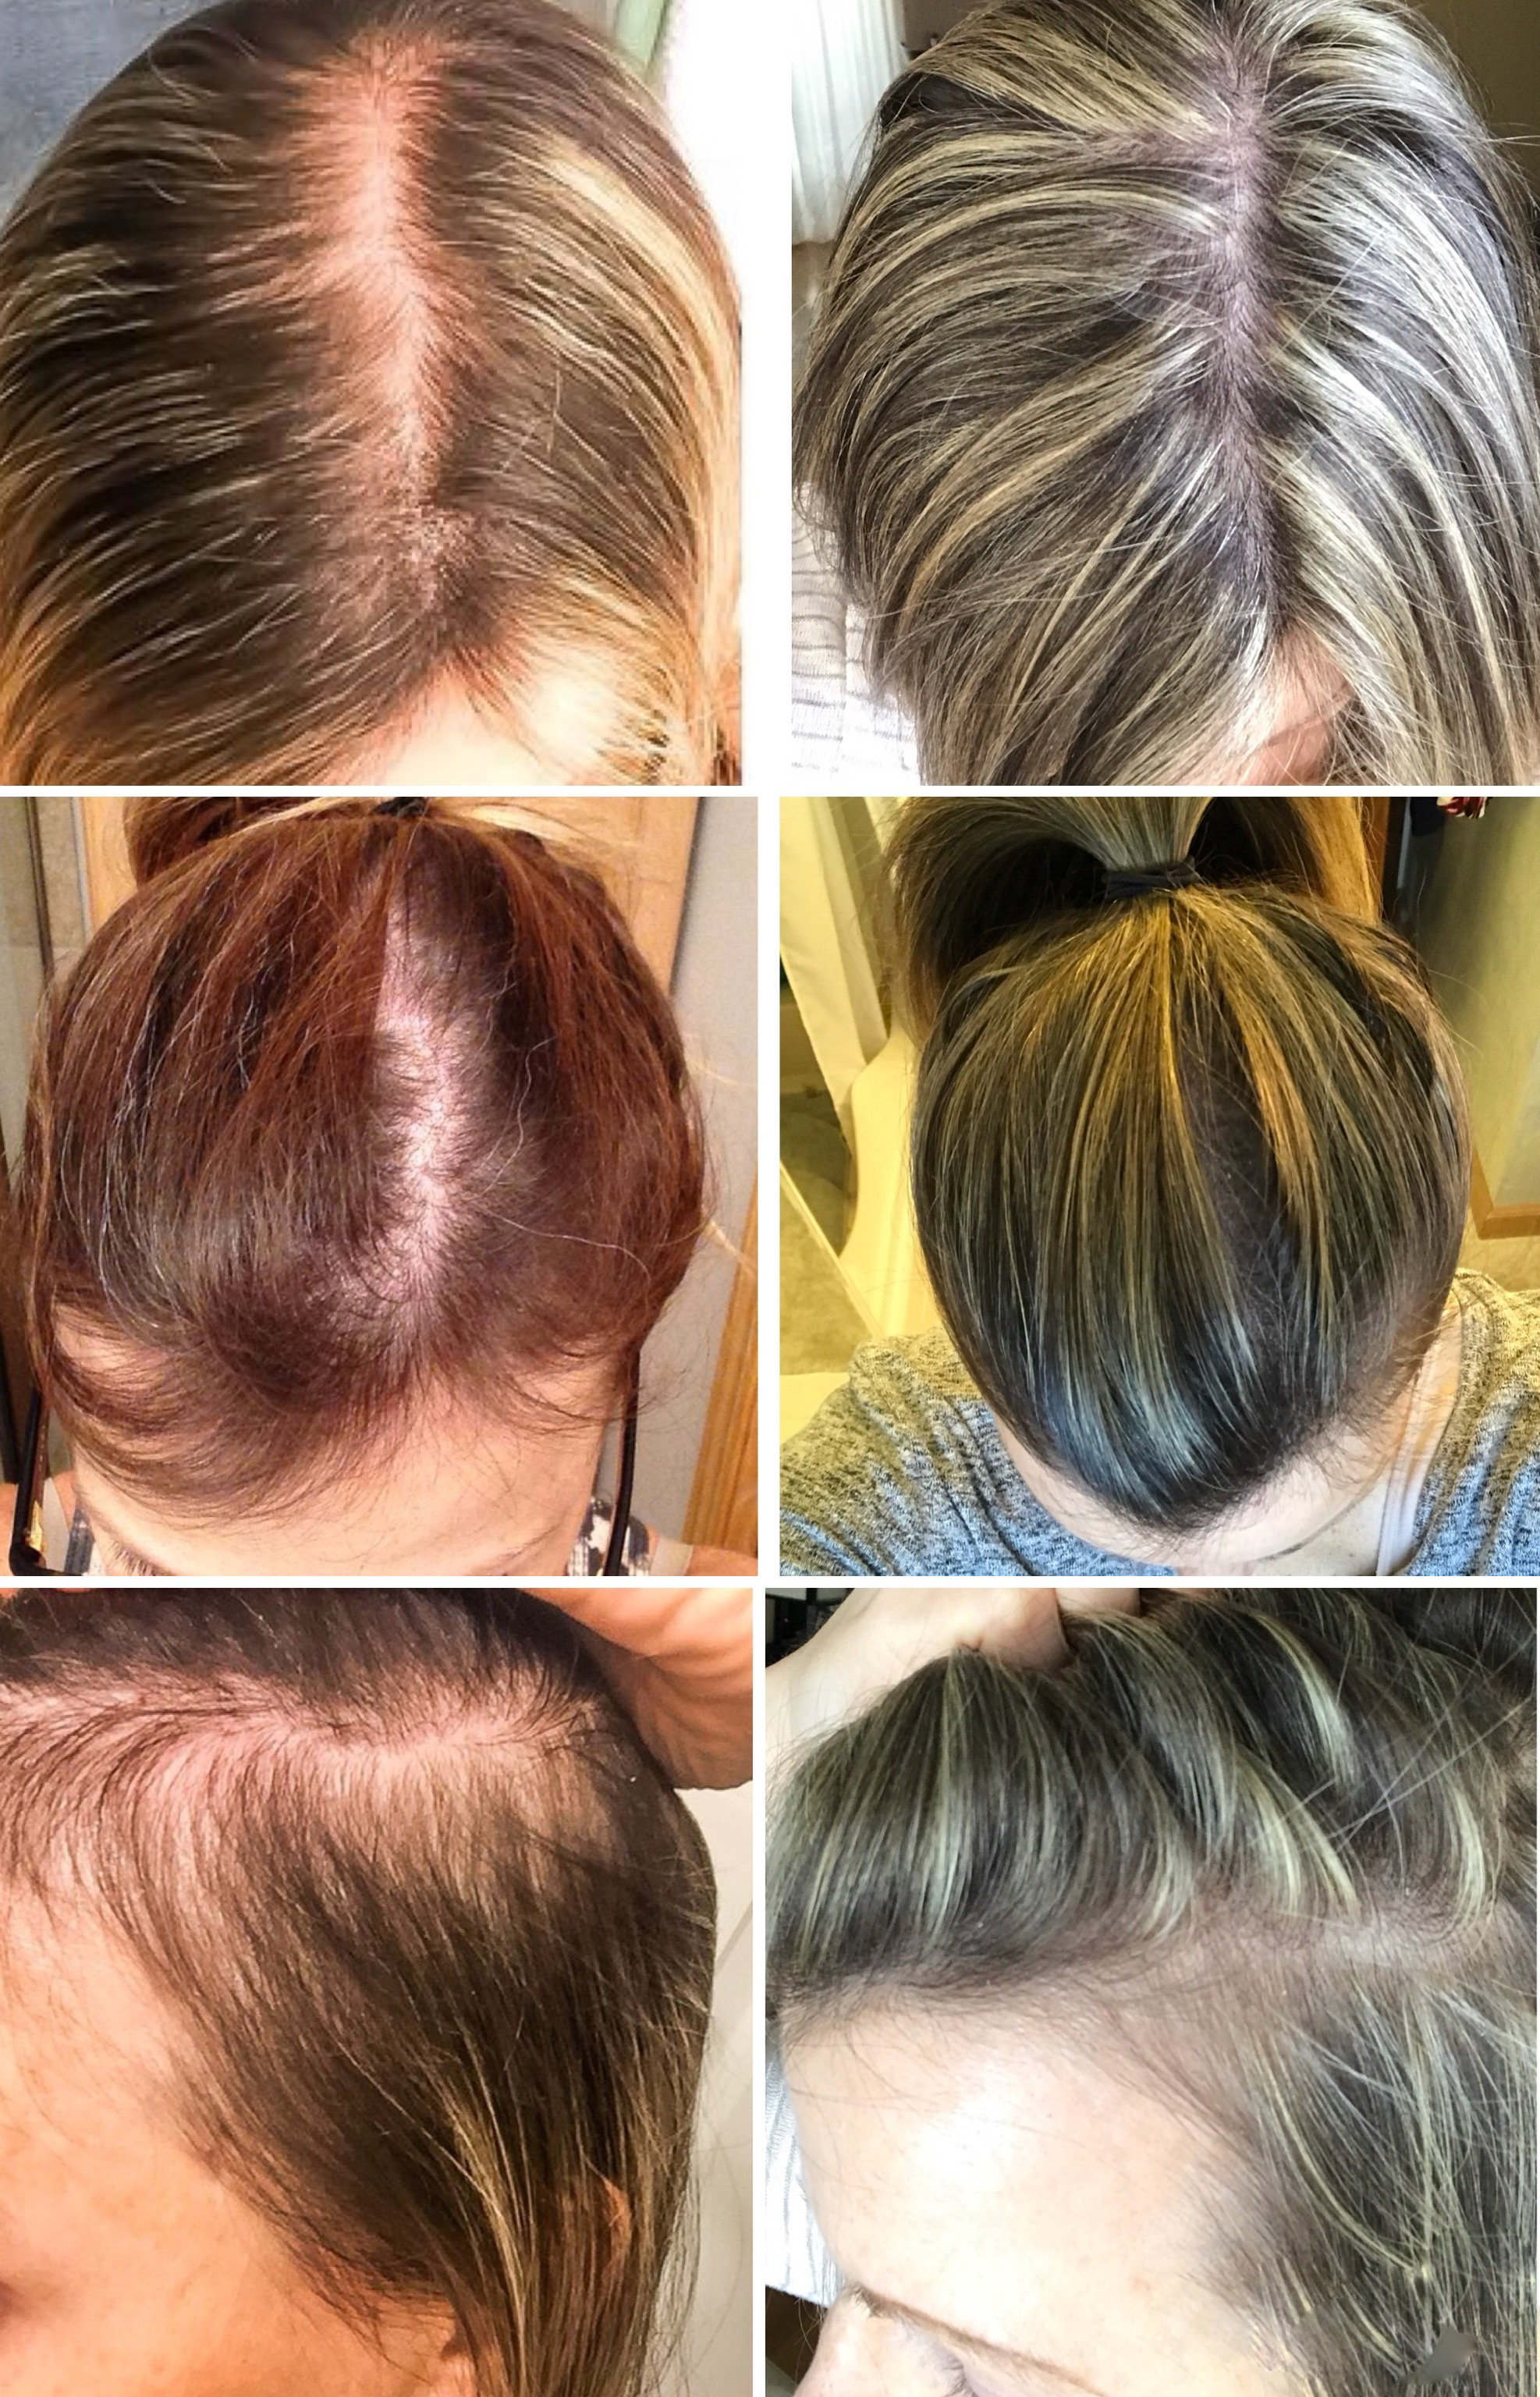 Women And Hair Loss: Causes, Solutions, and Support. Female hair loss. Hair loss after pregnancy. Postpartum hair loss.